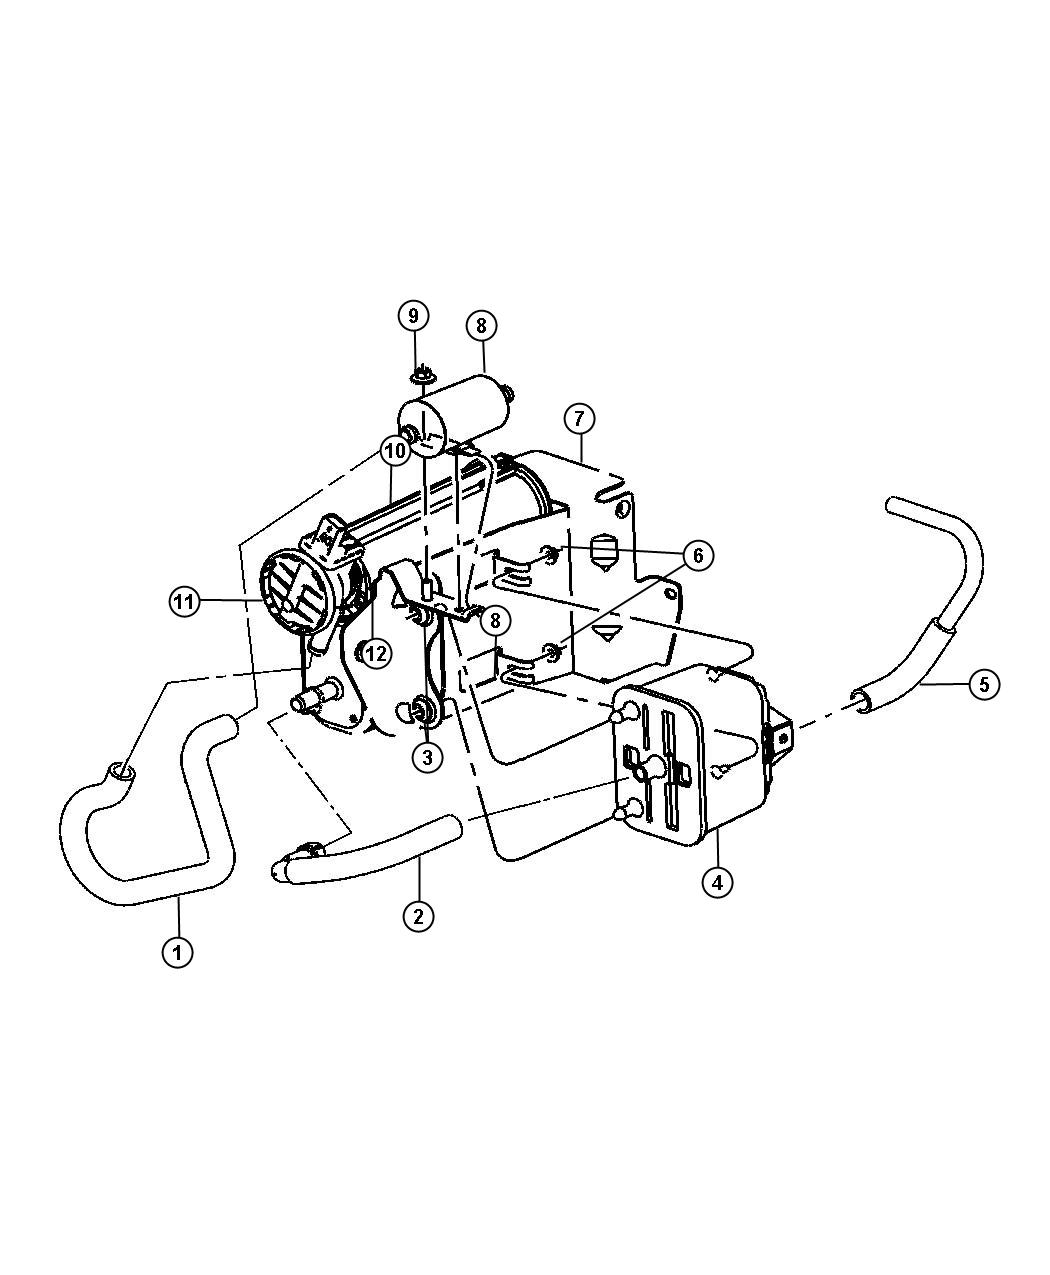 Diagram Wiring Diagram For Dodge Ram Hemi Full